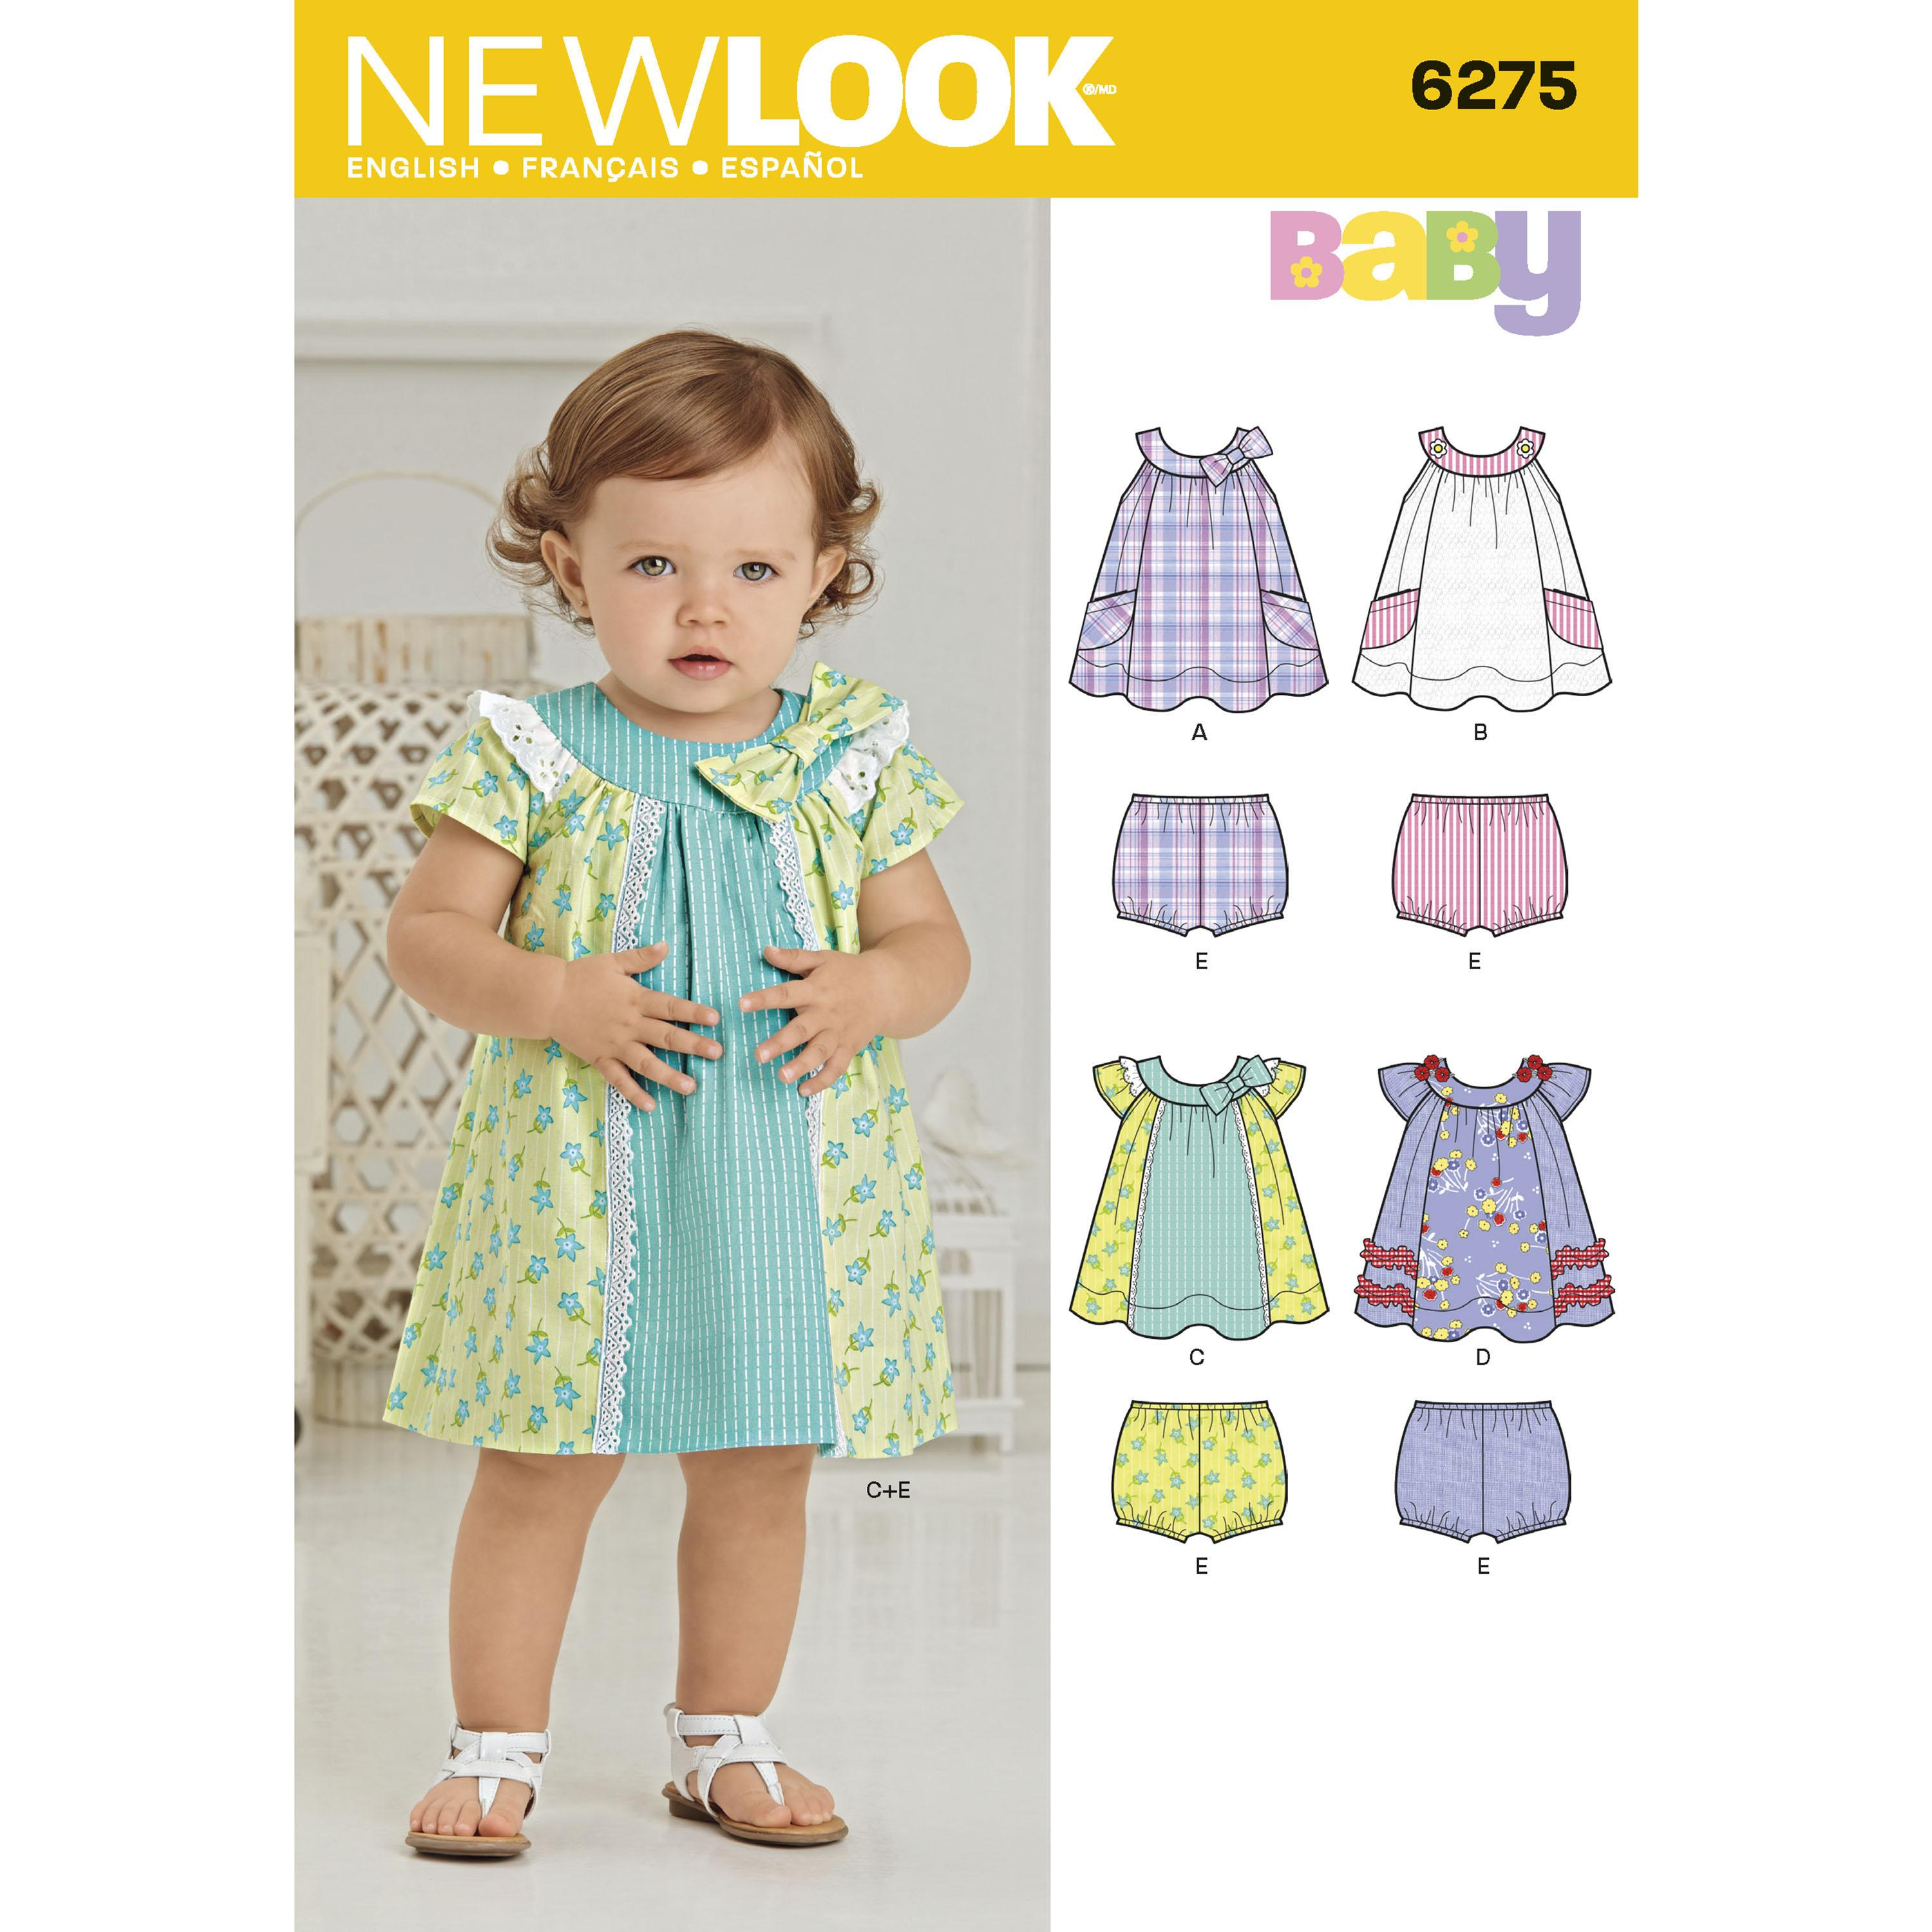 NewLook N6275 Babies' Dress and Panties